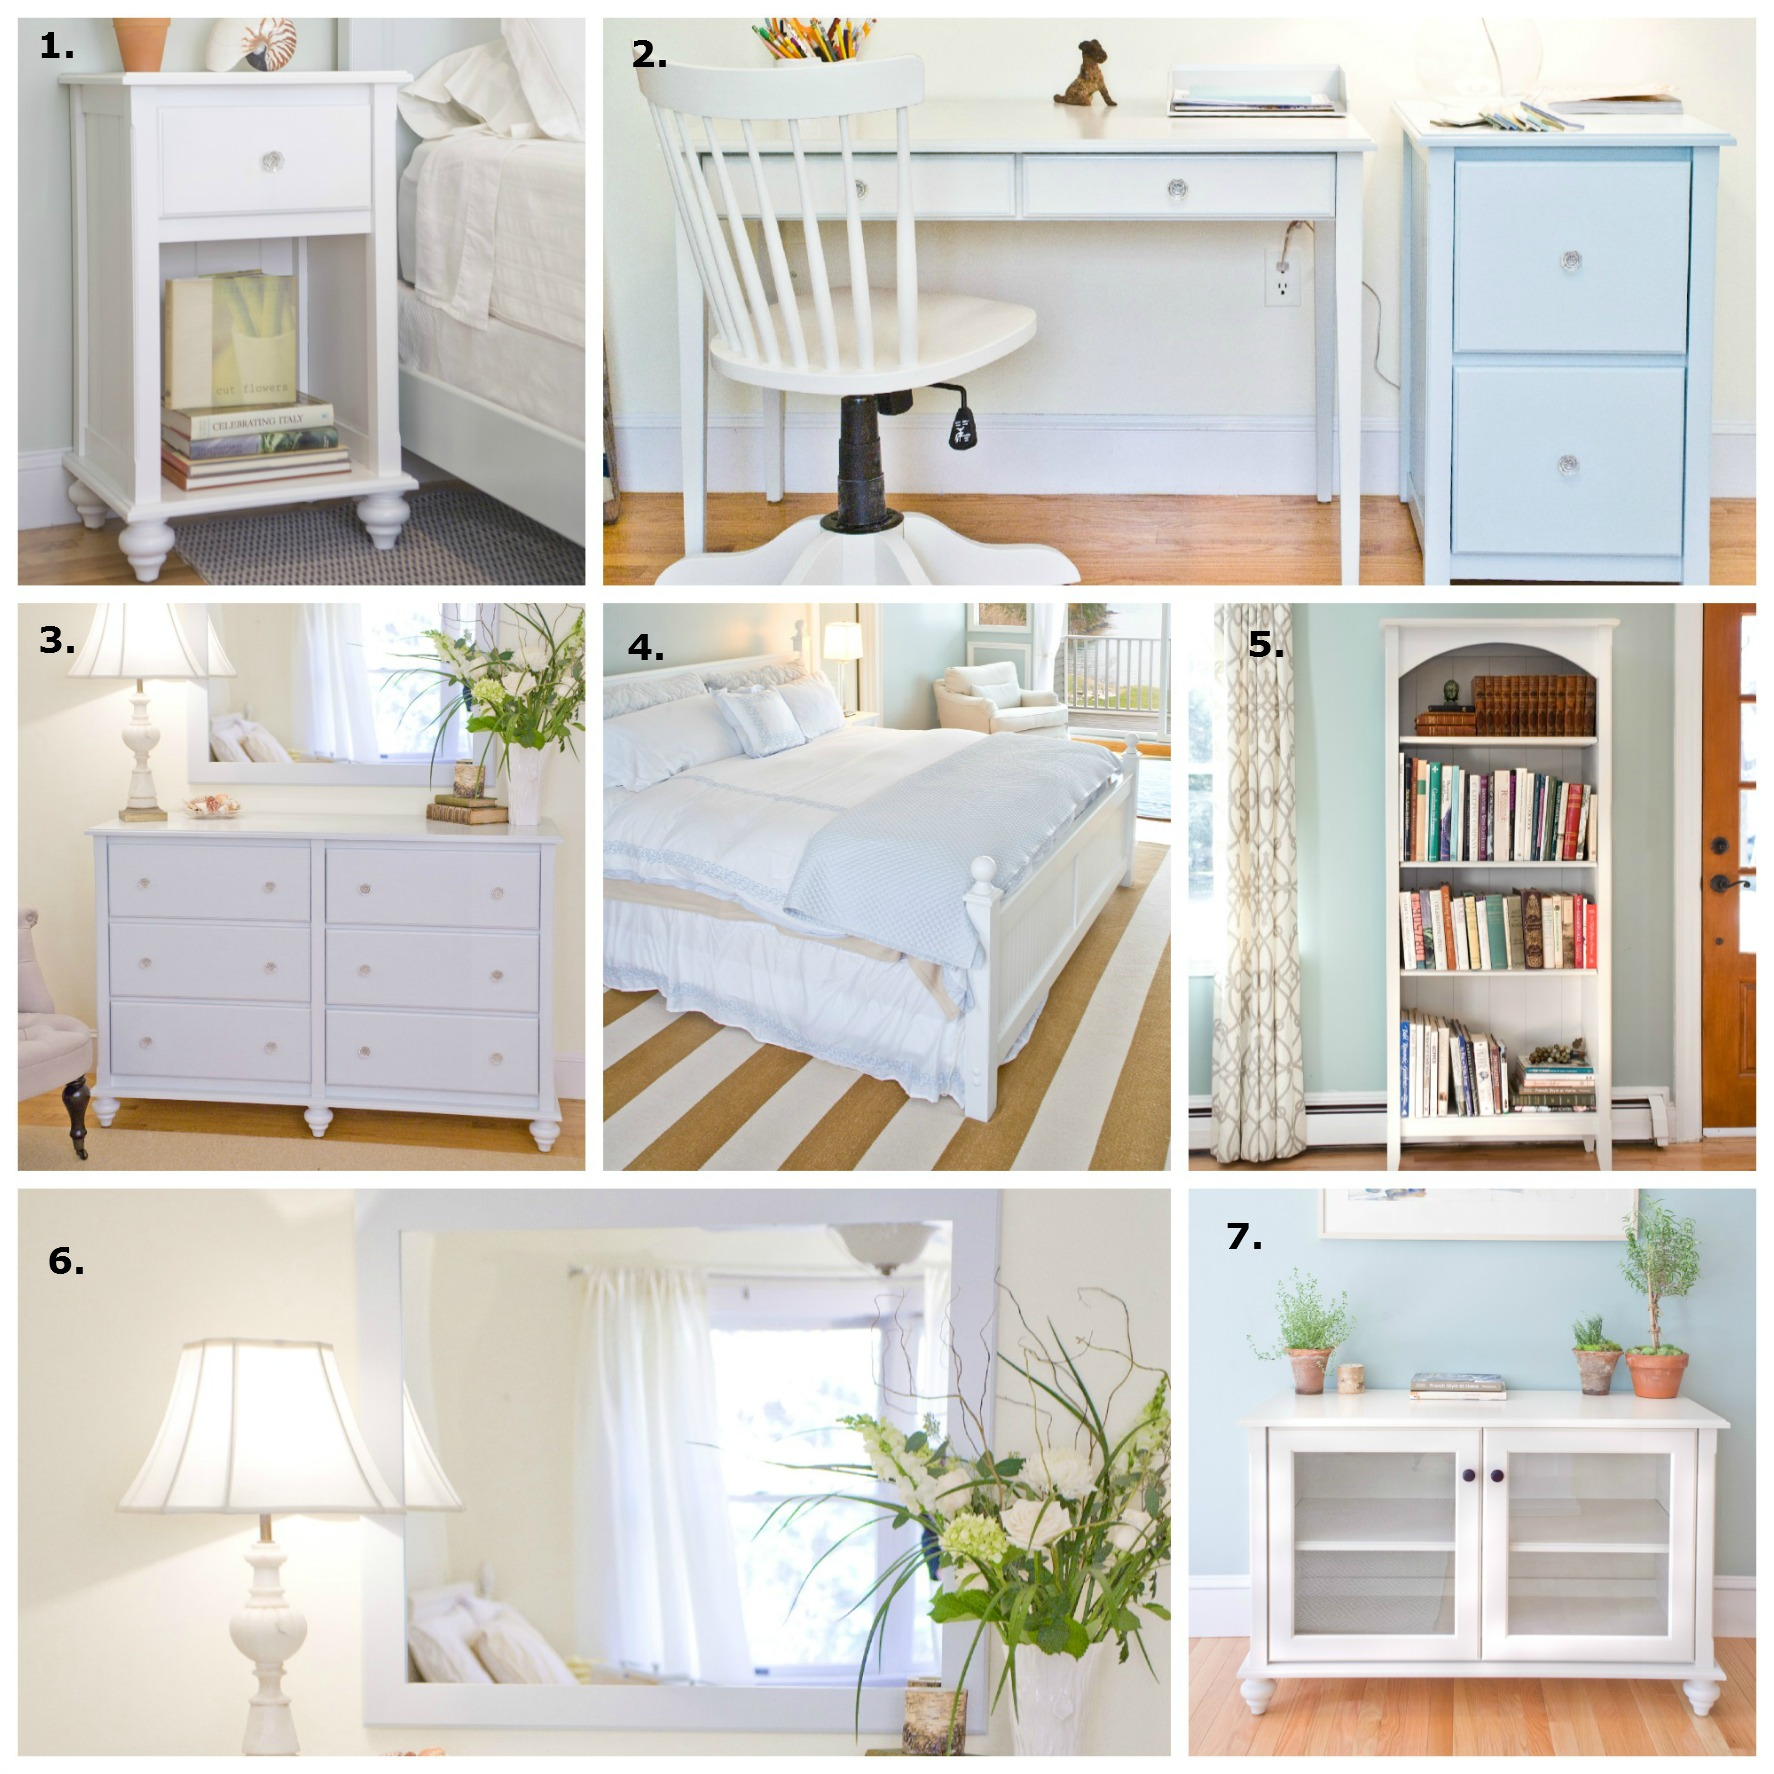 Culitvate Com Featured A Celia Bedilia Kitchen: Cottage Coastal Style Furniture